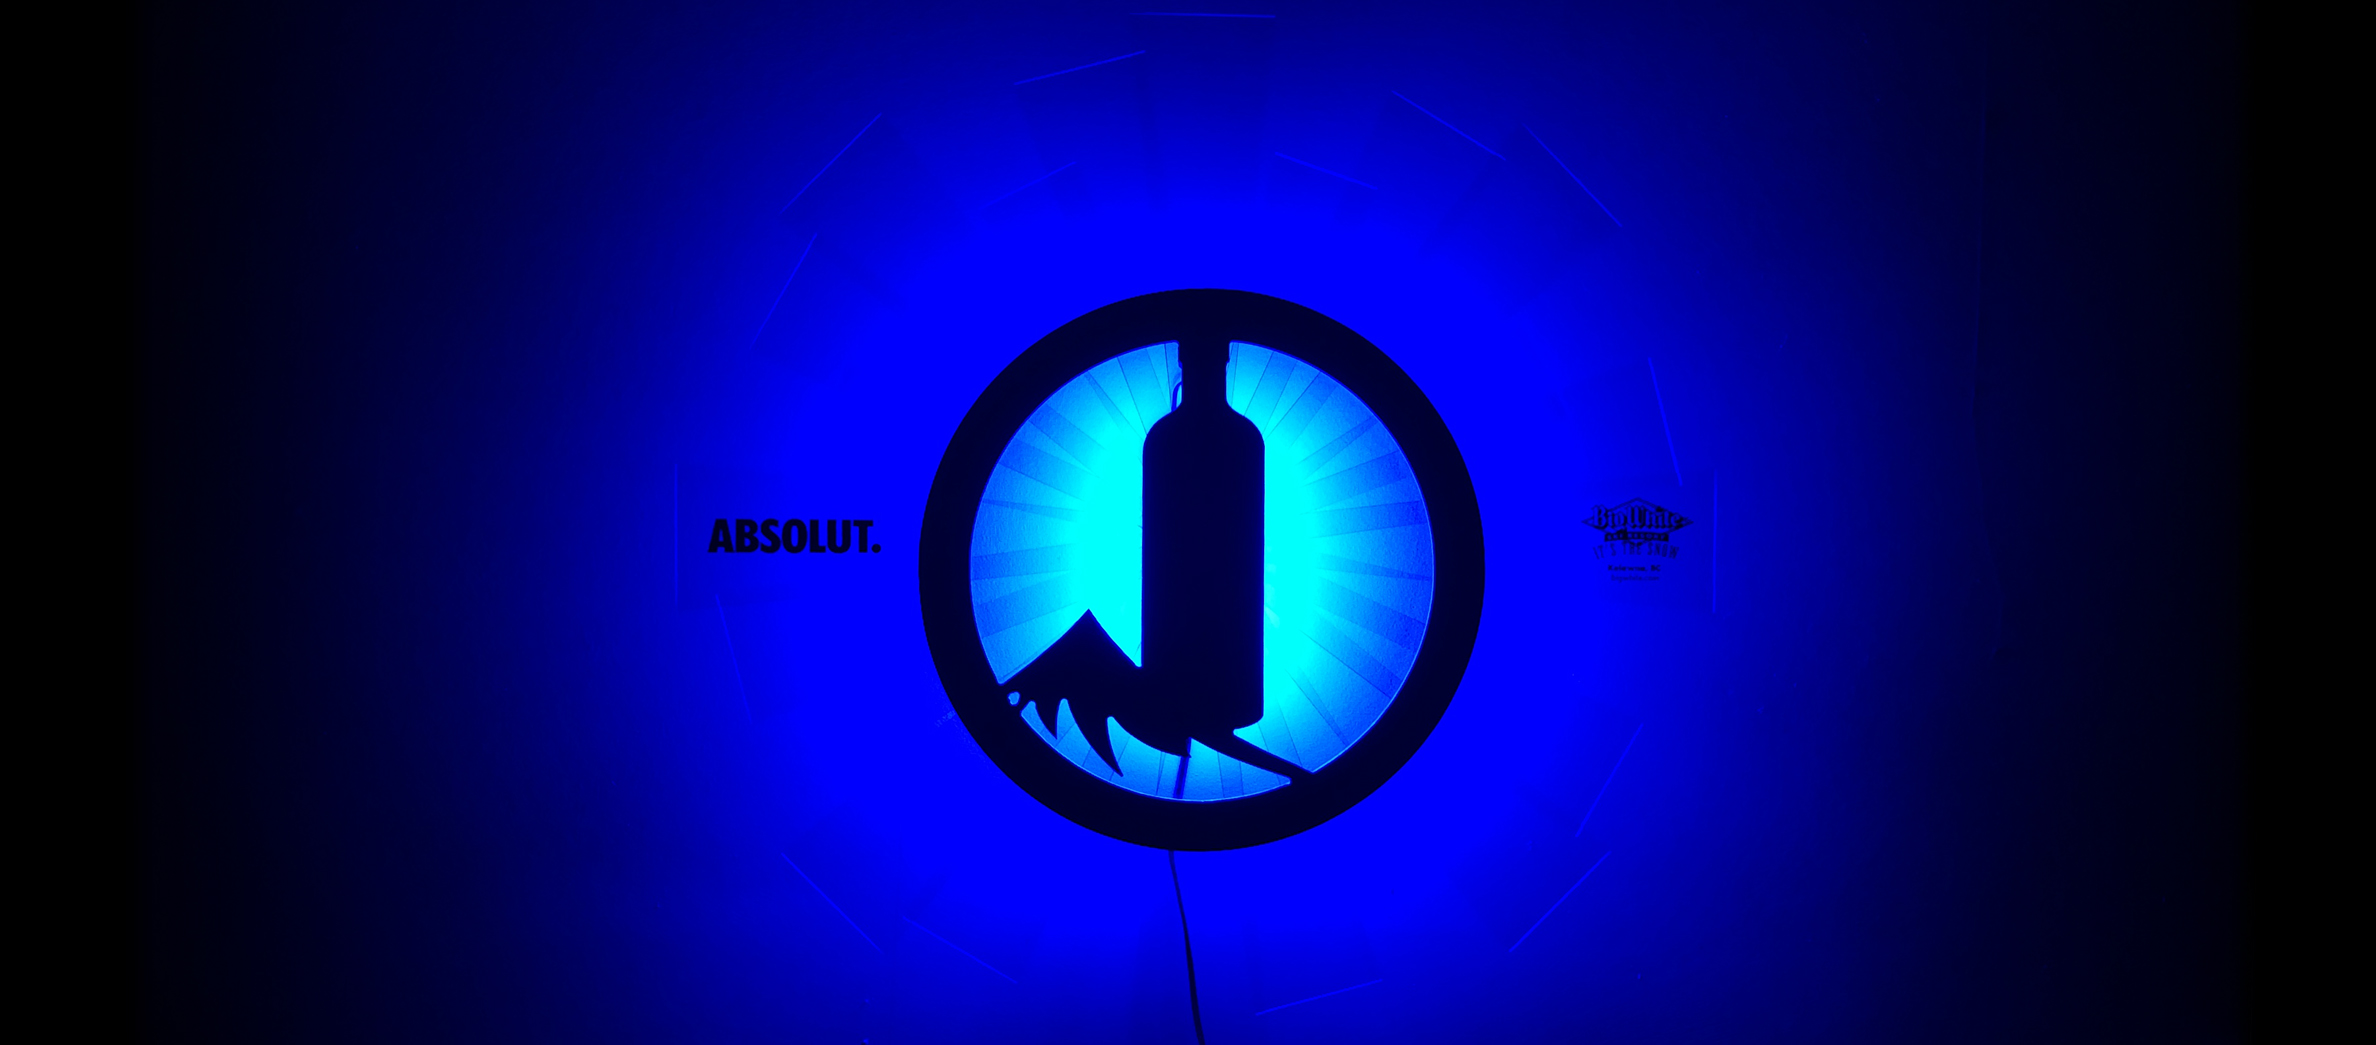 absolut-illuminated-led-plaque-modern-custom.jpg